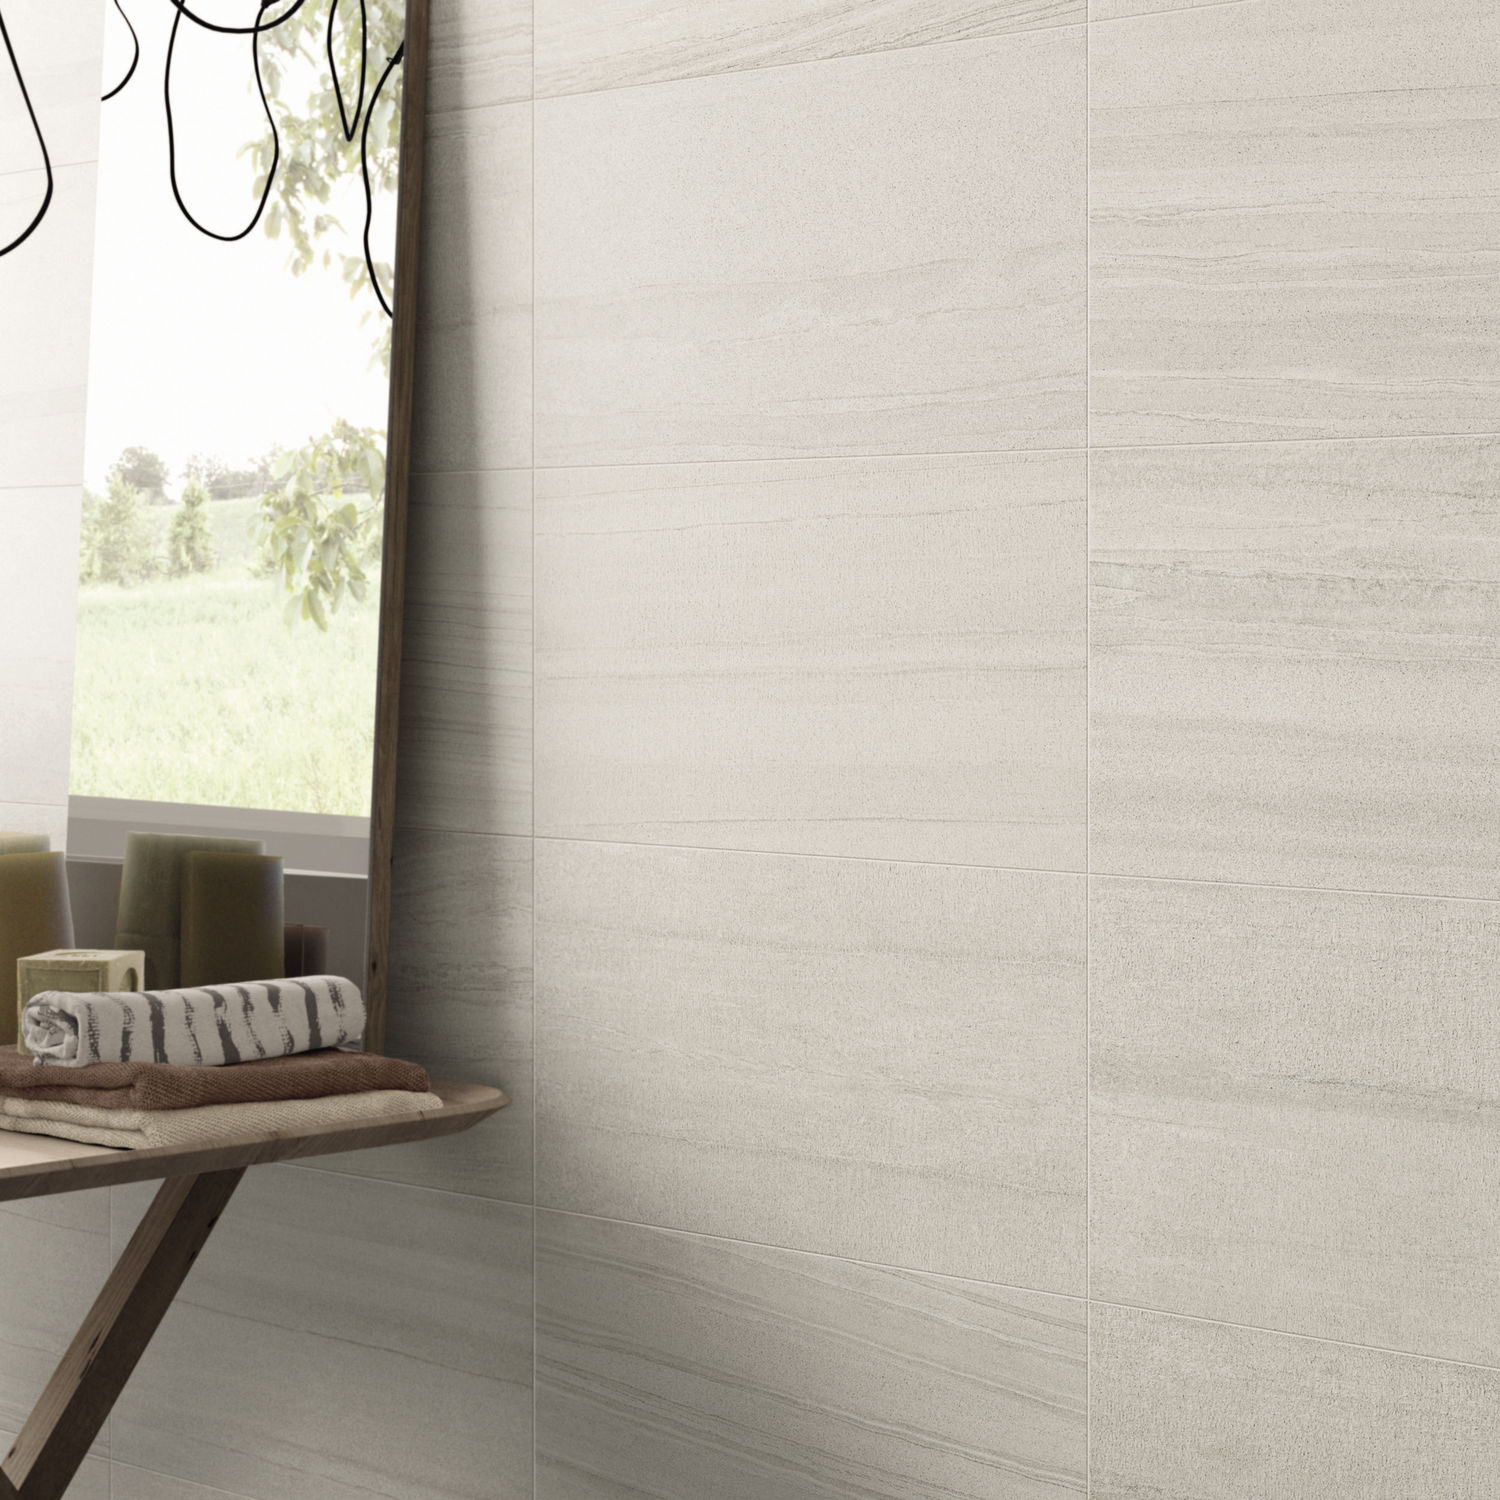 ... Indoor tile / wall / for floors / ceramic EVO-Q by PROVENZA EMILGROUP